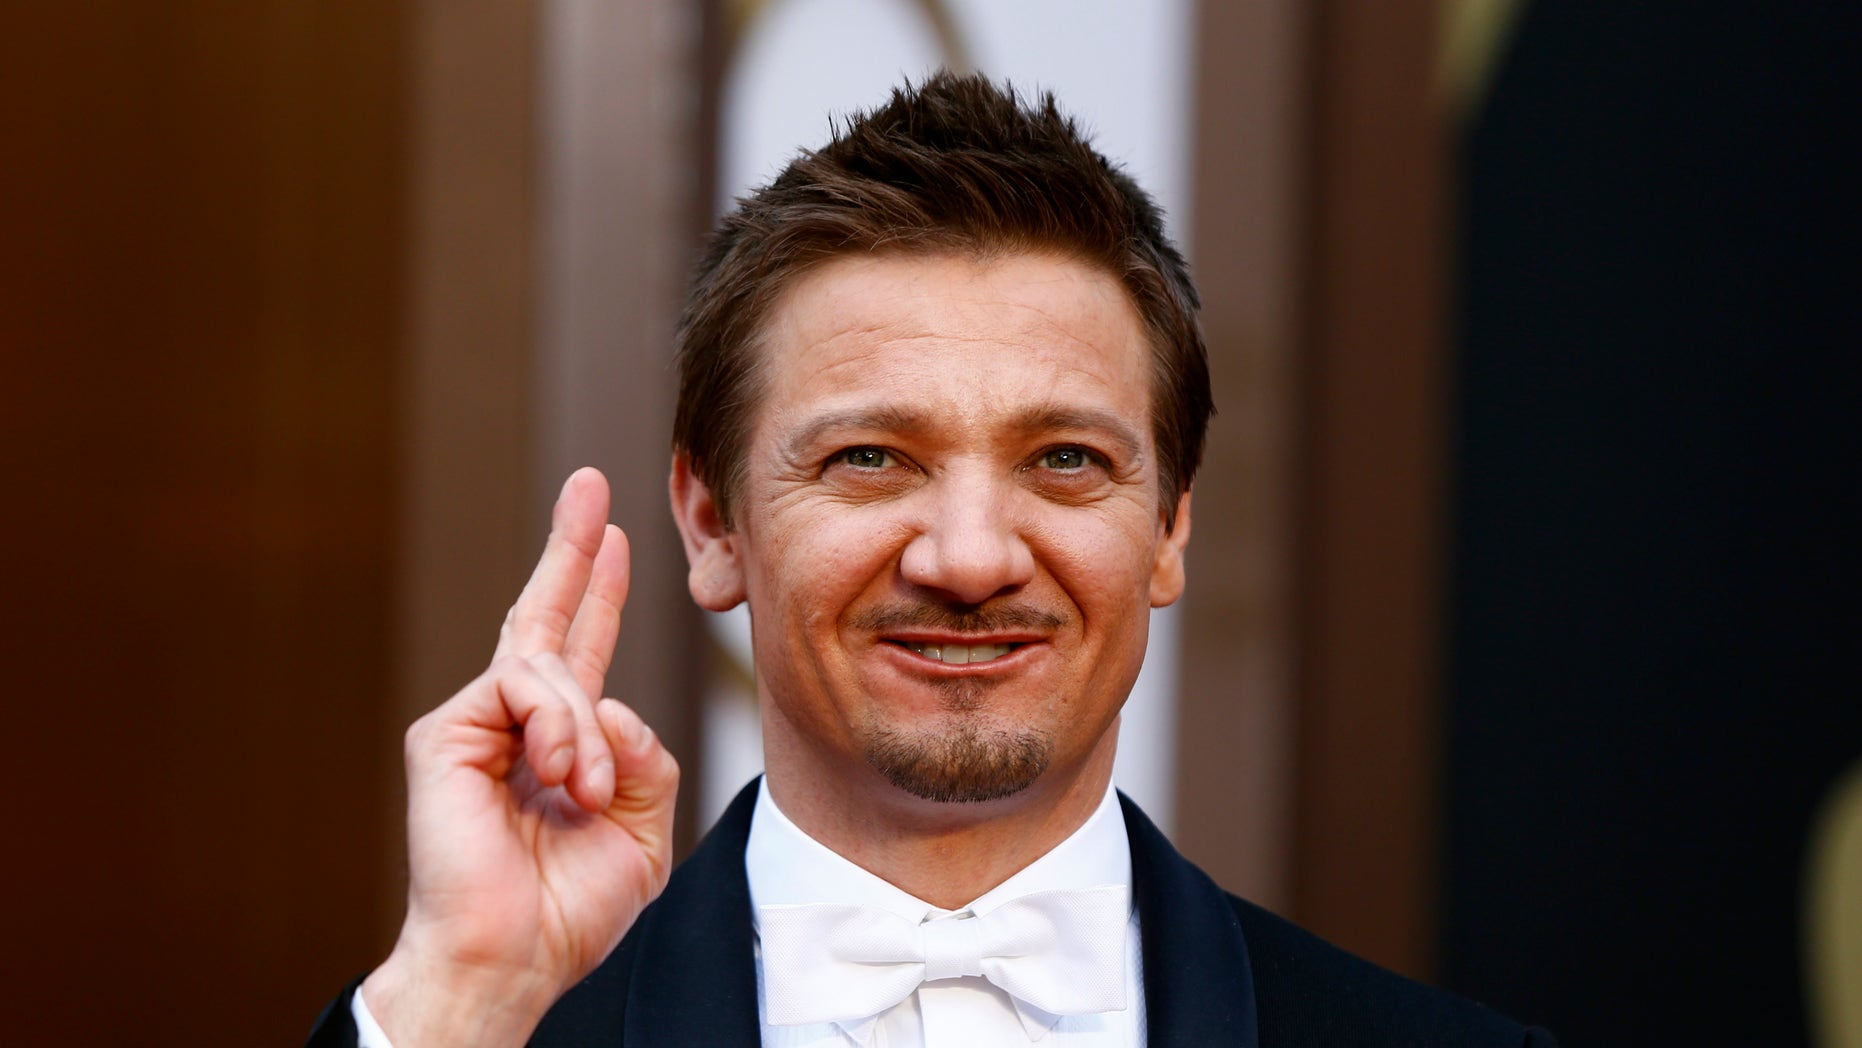 Actor Jeremy Renner arrives at the 86th Academy Awards in Hollywood, California March 2, 2014.   REUTERS/Lucas Jackson (UNITED STATES TAGS: ENTERTAINMENT) (OSCARS-ARRIVALS) - RTR3FXZ8